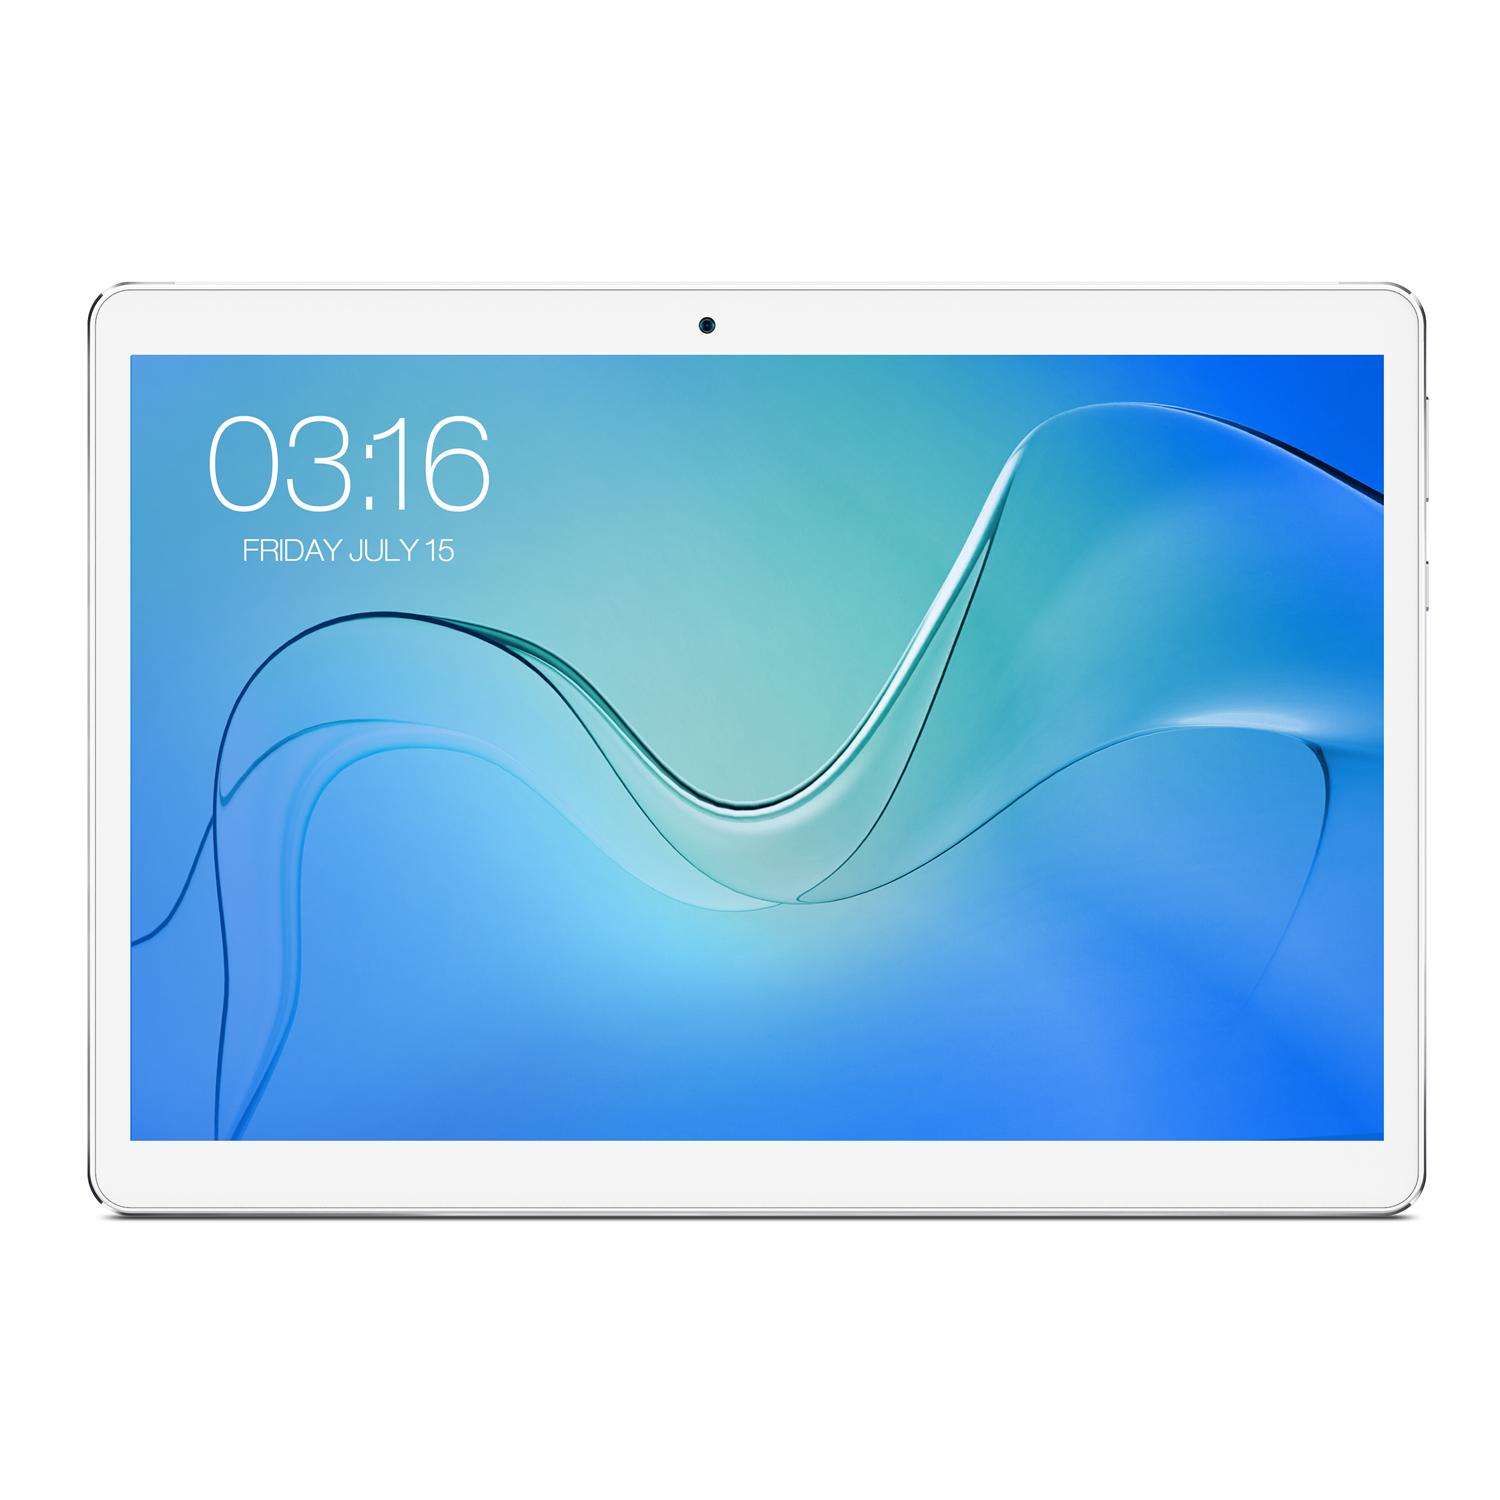 Teclast P10 Rockchip RK3368 Android Tablet